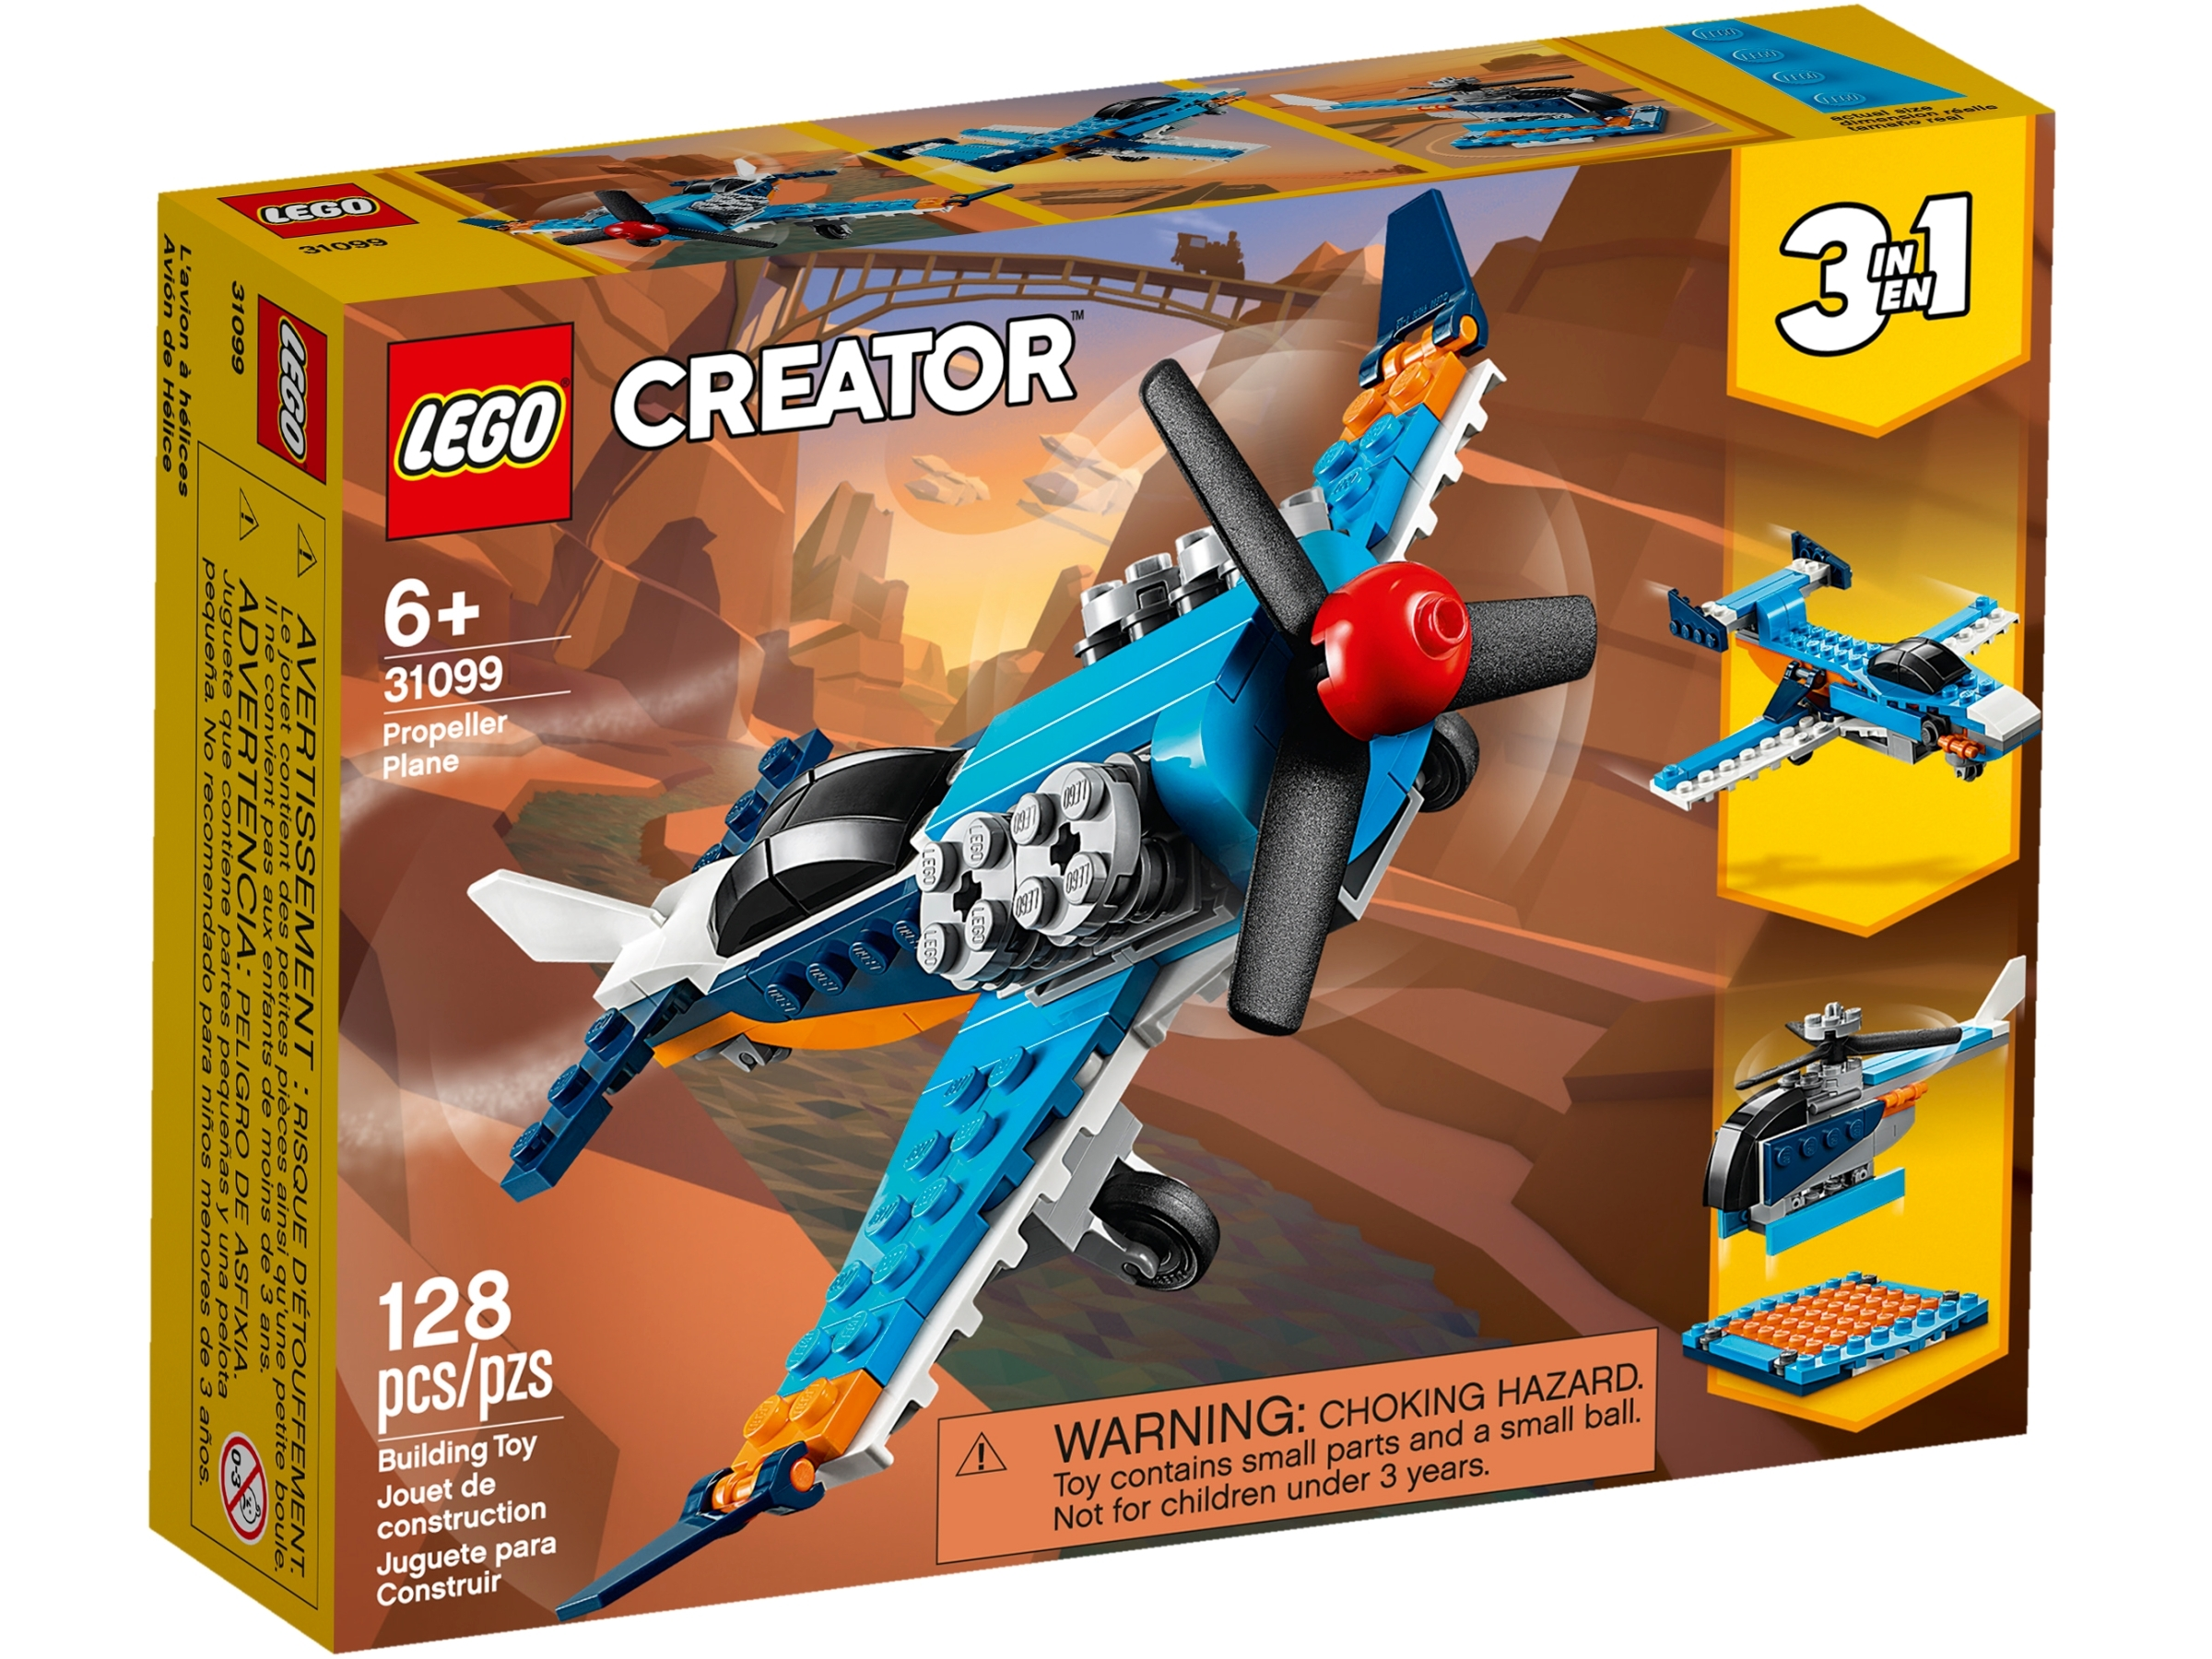 31099 LEGO Creator Propeller Plane 128 Pieces Age 6 Years+